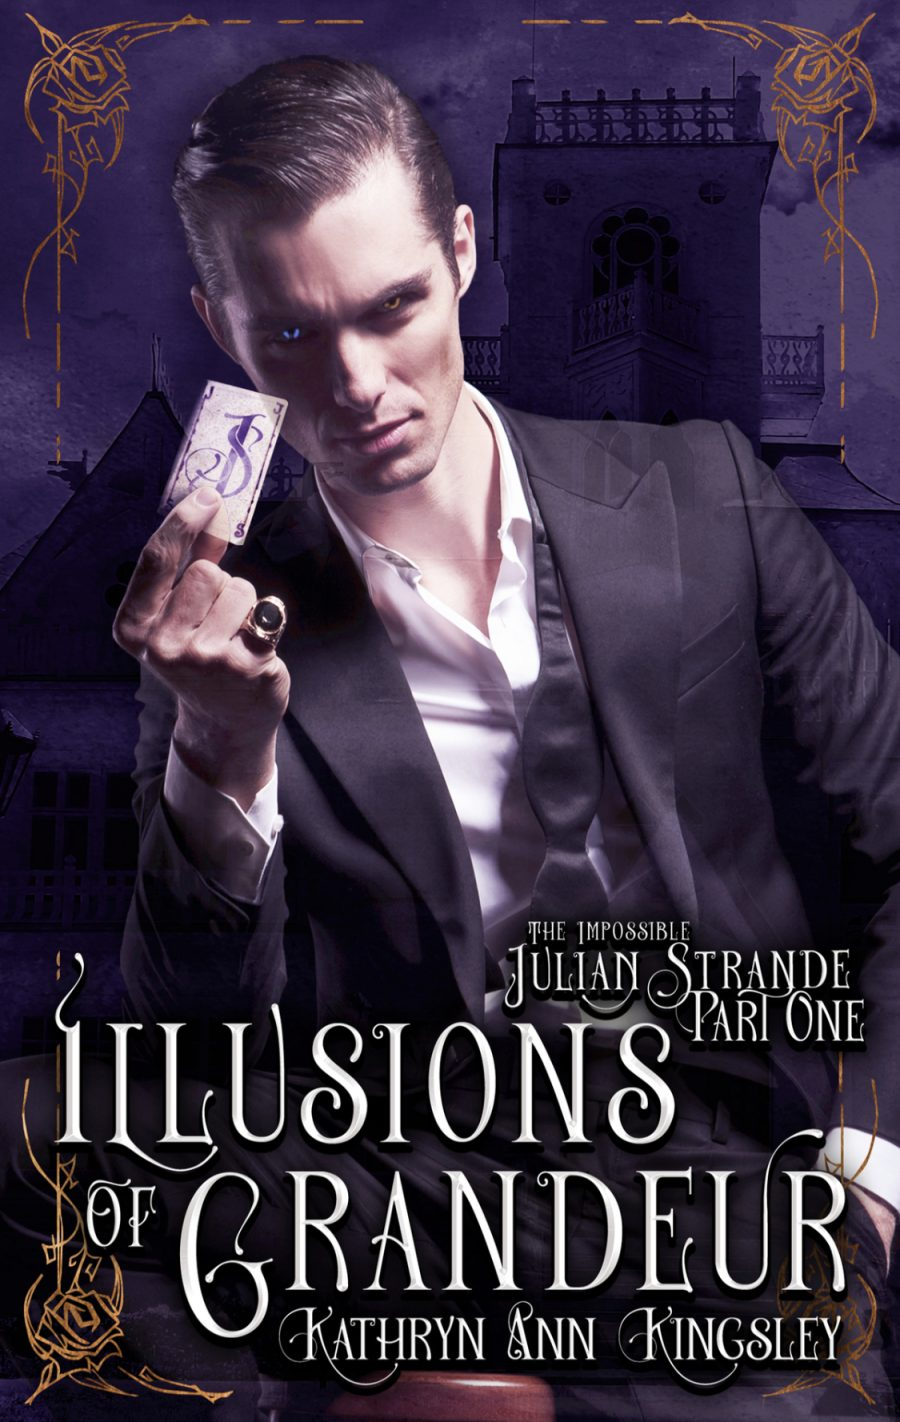 Illusions of Grandeur (The Impossible Julian Strande - Book 1) by Kathryn Ann Kingsley - A Book Review #BookReview #5Stars #Dark #Ghost #Romance